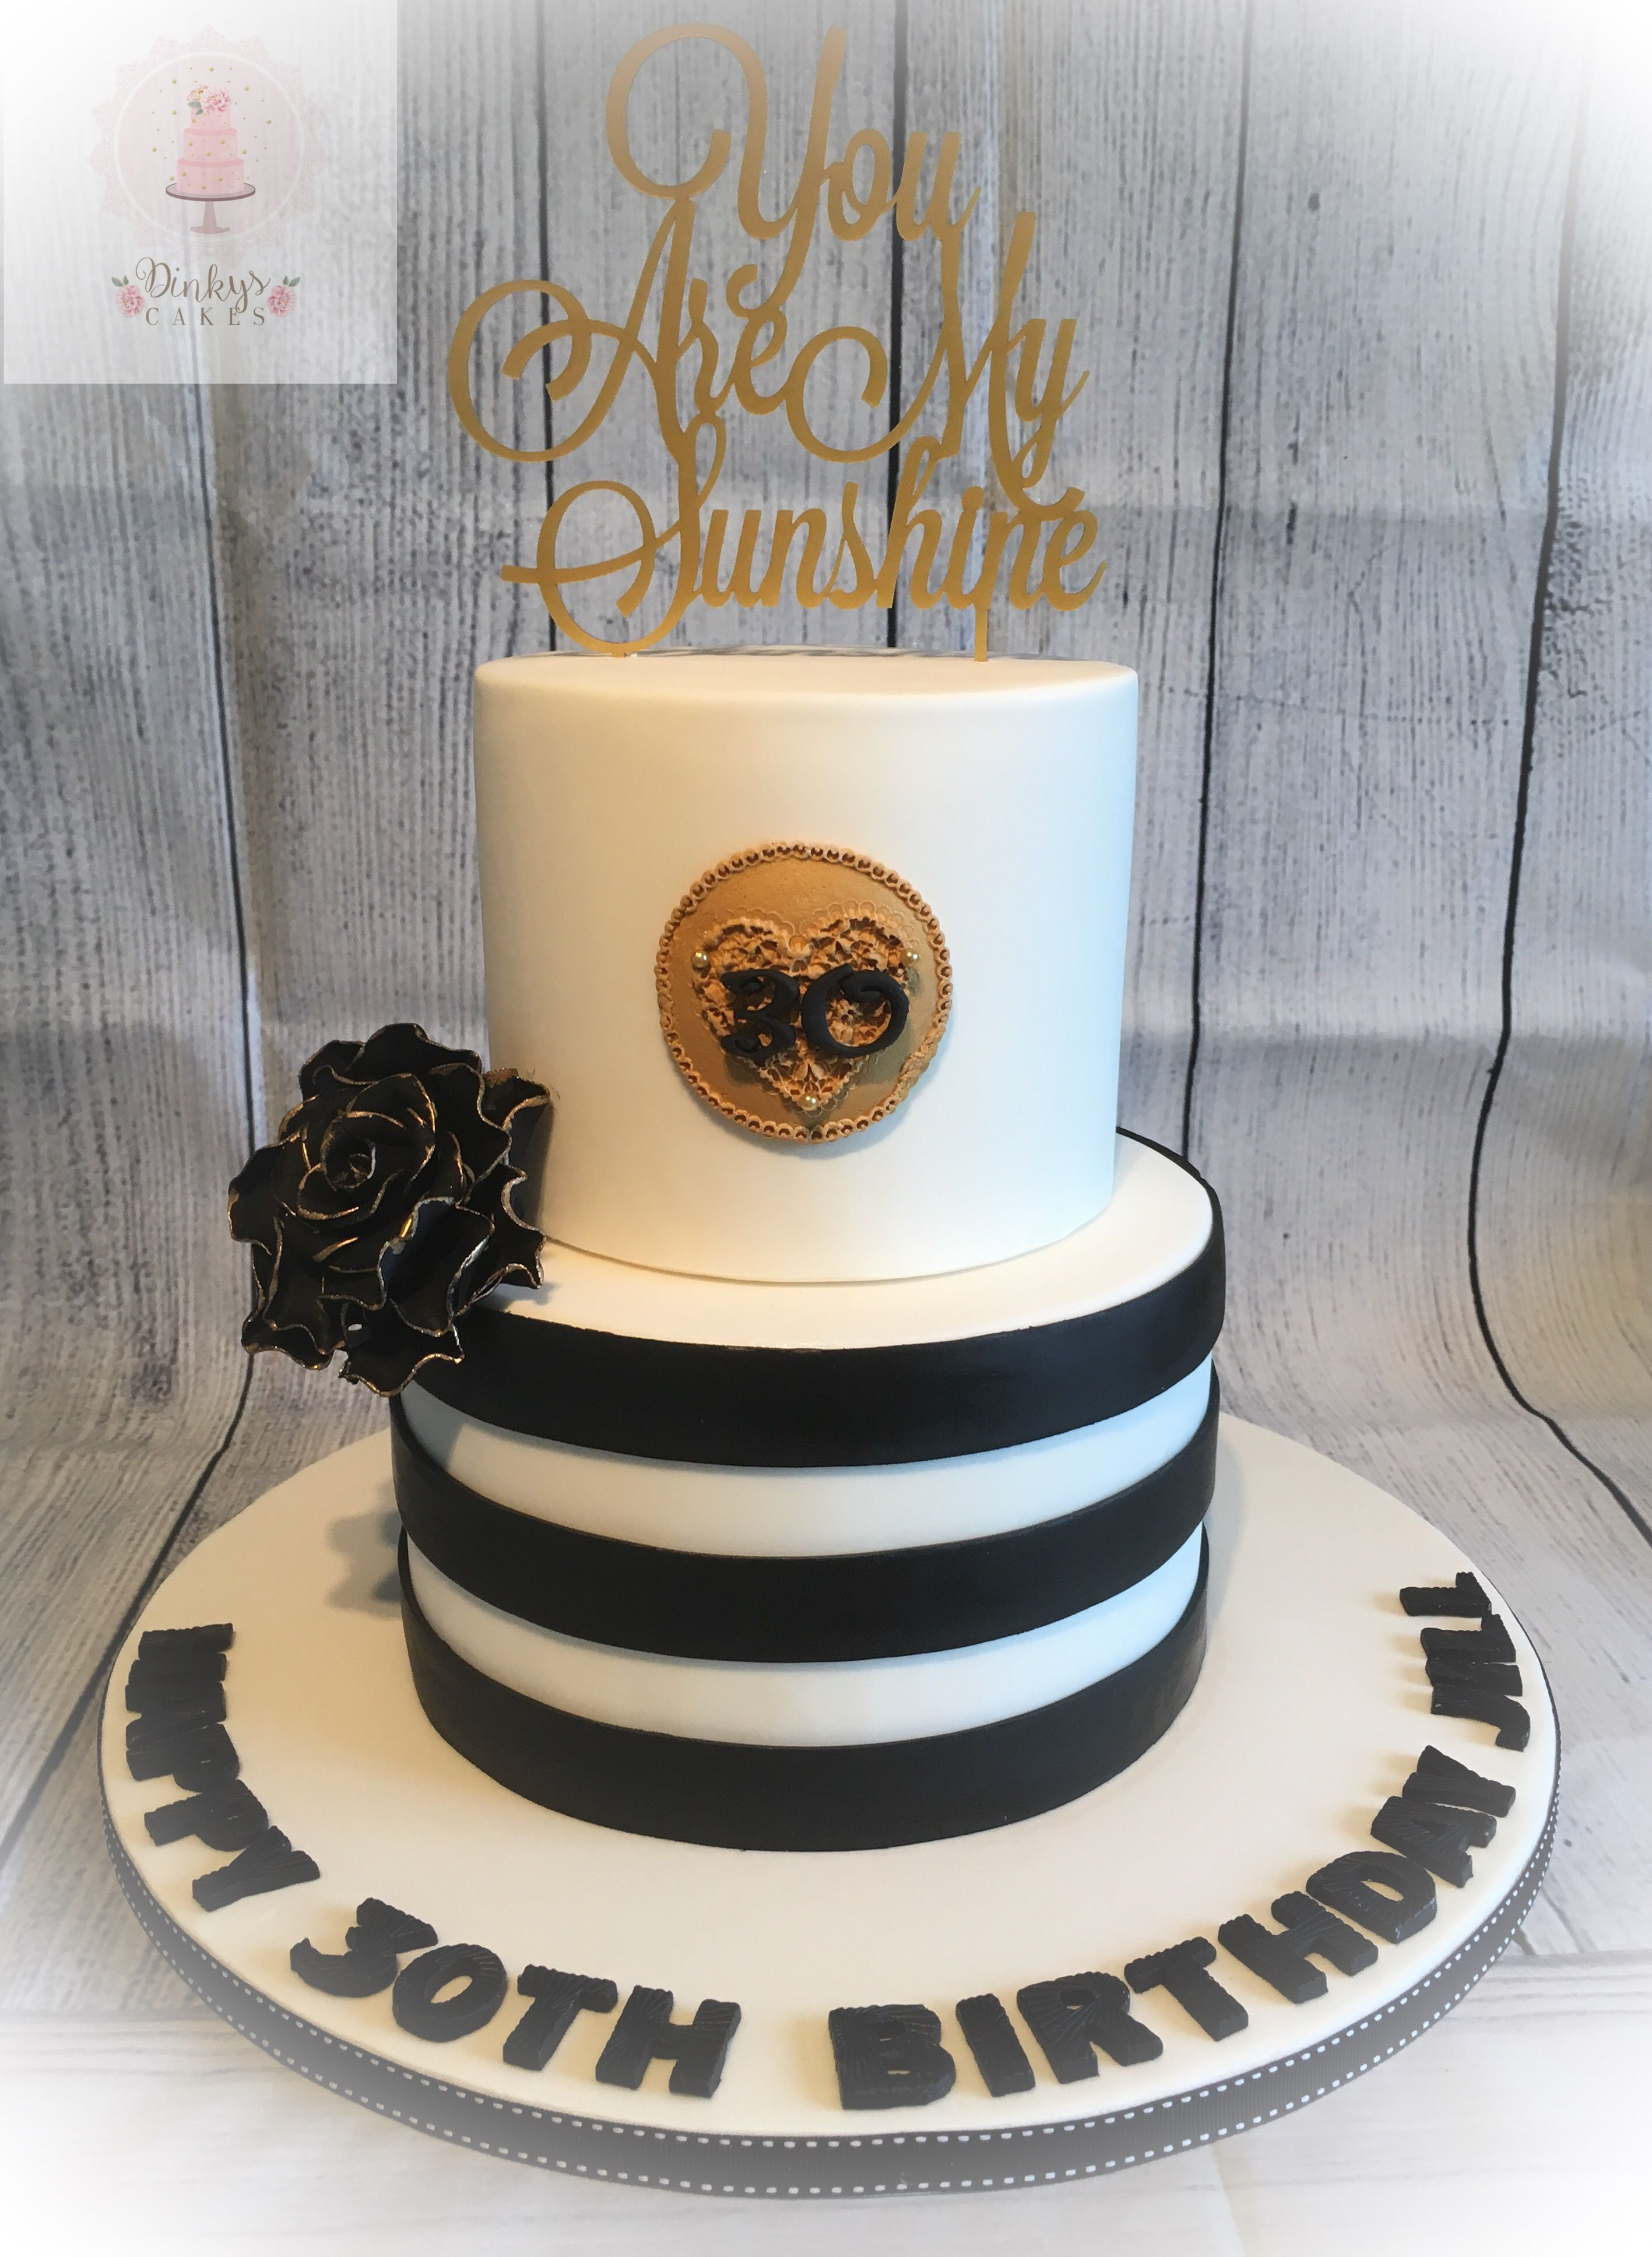 Terrific Black White And Gold Cake For A Surprise 30Th Birthday Personalised Birthday Cards Akebfashionlily Jamesorg